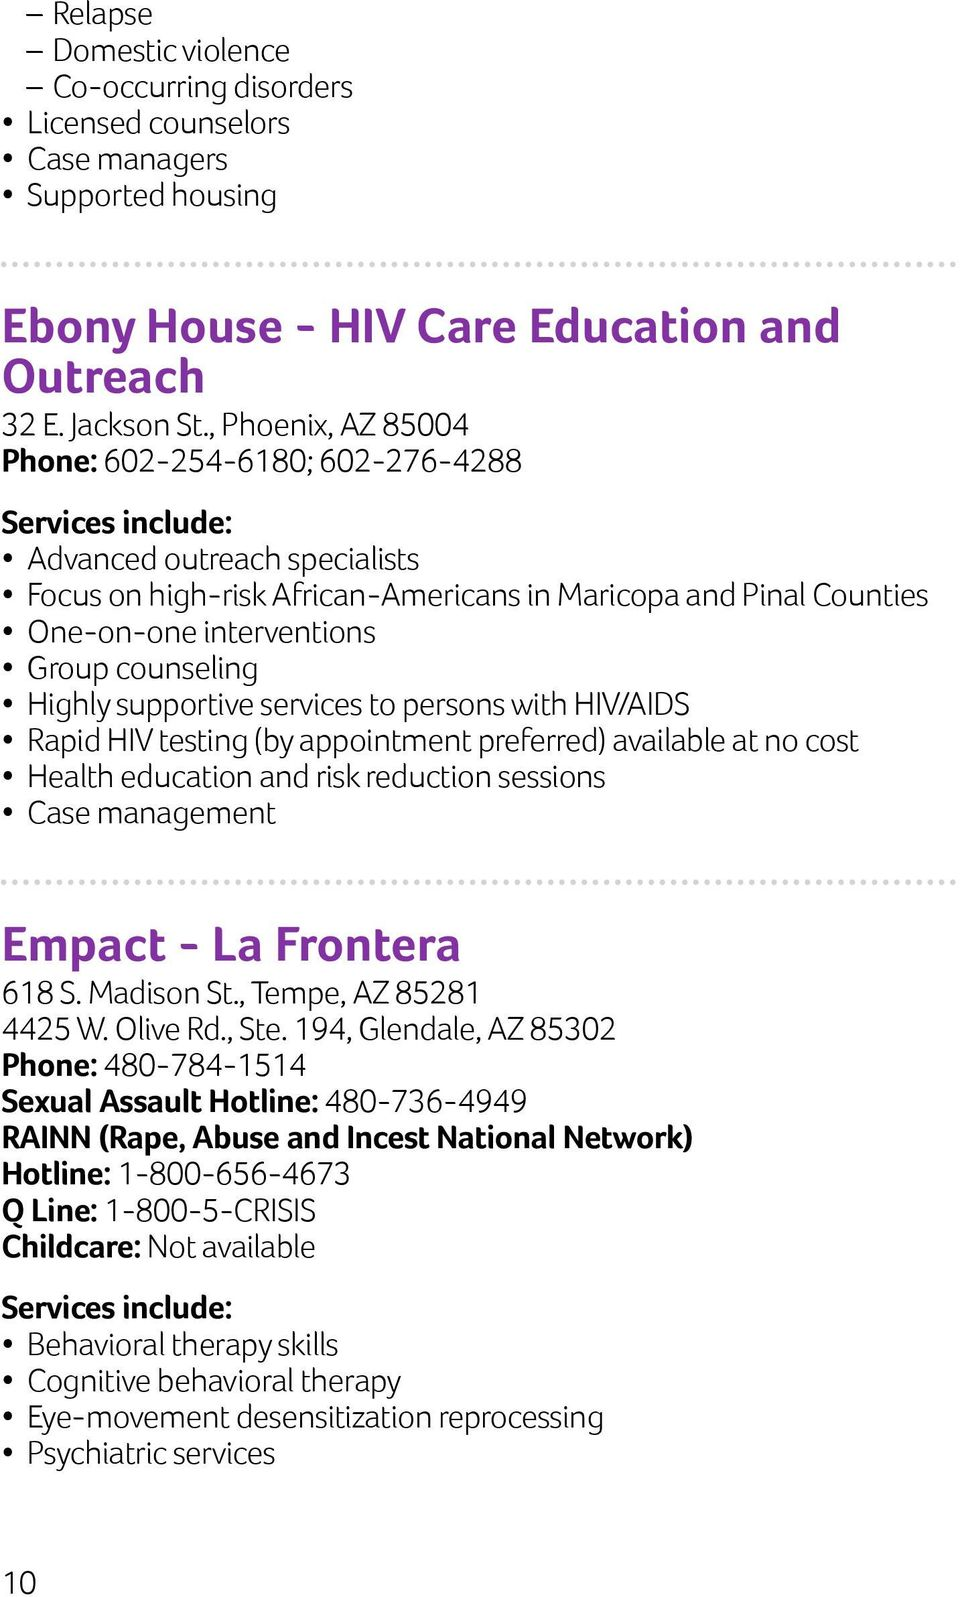 Highly supportive services to persons with HIV/AIDS Rapid HIV testing (by appointment preferred) available at no cost Health education and risk reduction sessions Case management Empact - La Frontera